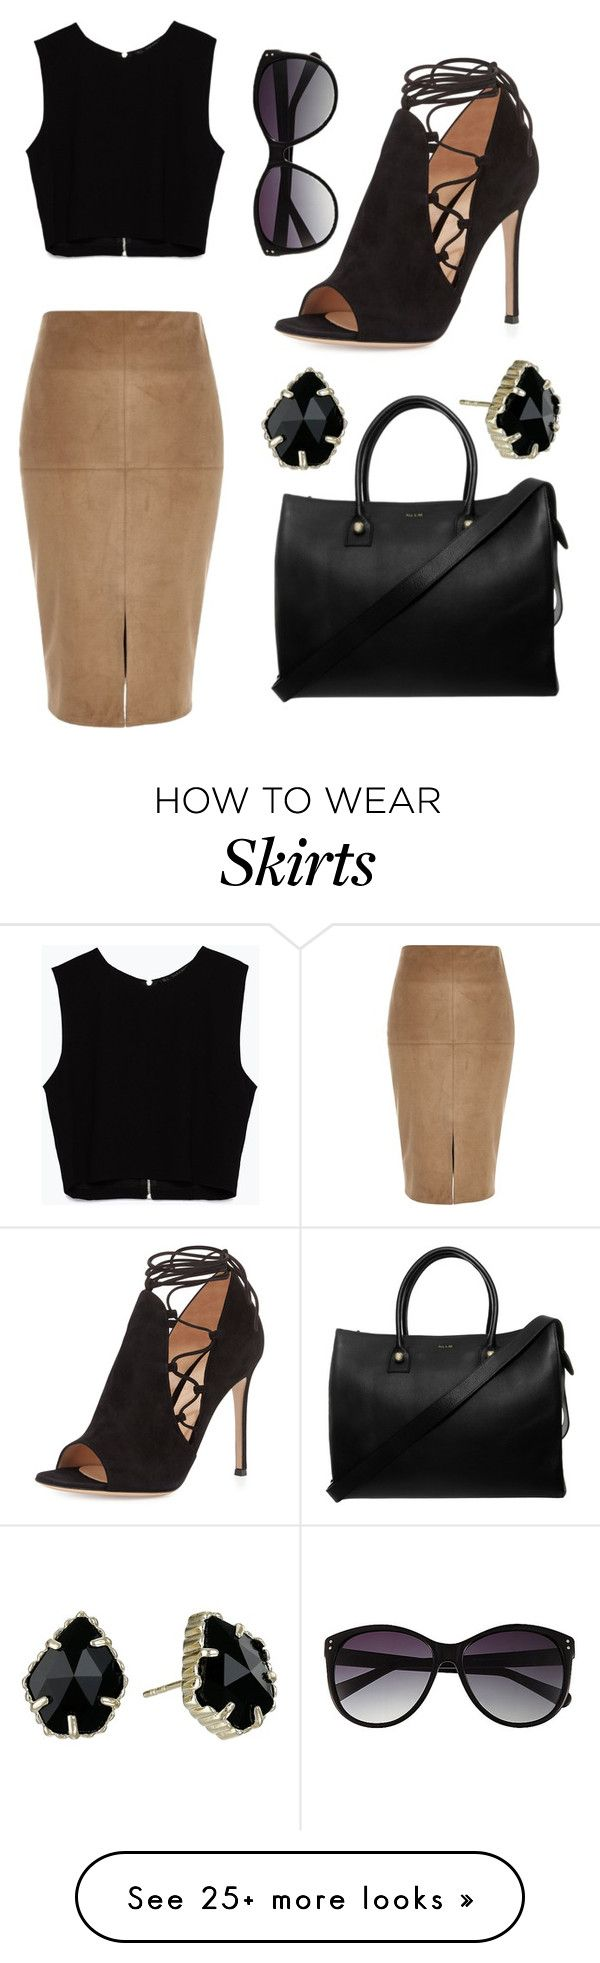 """Look #34"" by mode-noir on Polyvore featuring River Island, Gianvito Rossi, Zara, Paul & Joe, Vince Camuto and Kendra Scott"